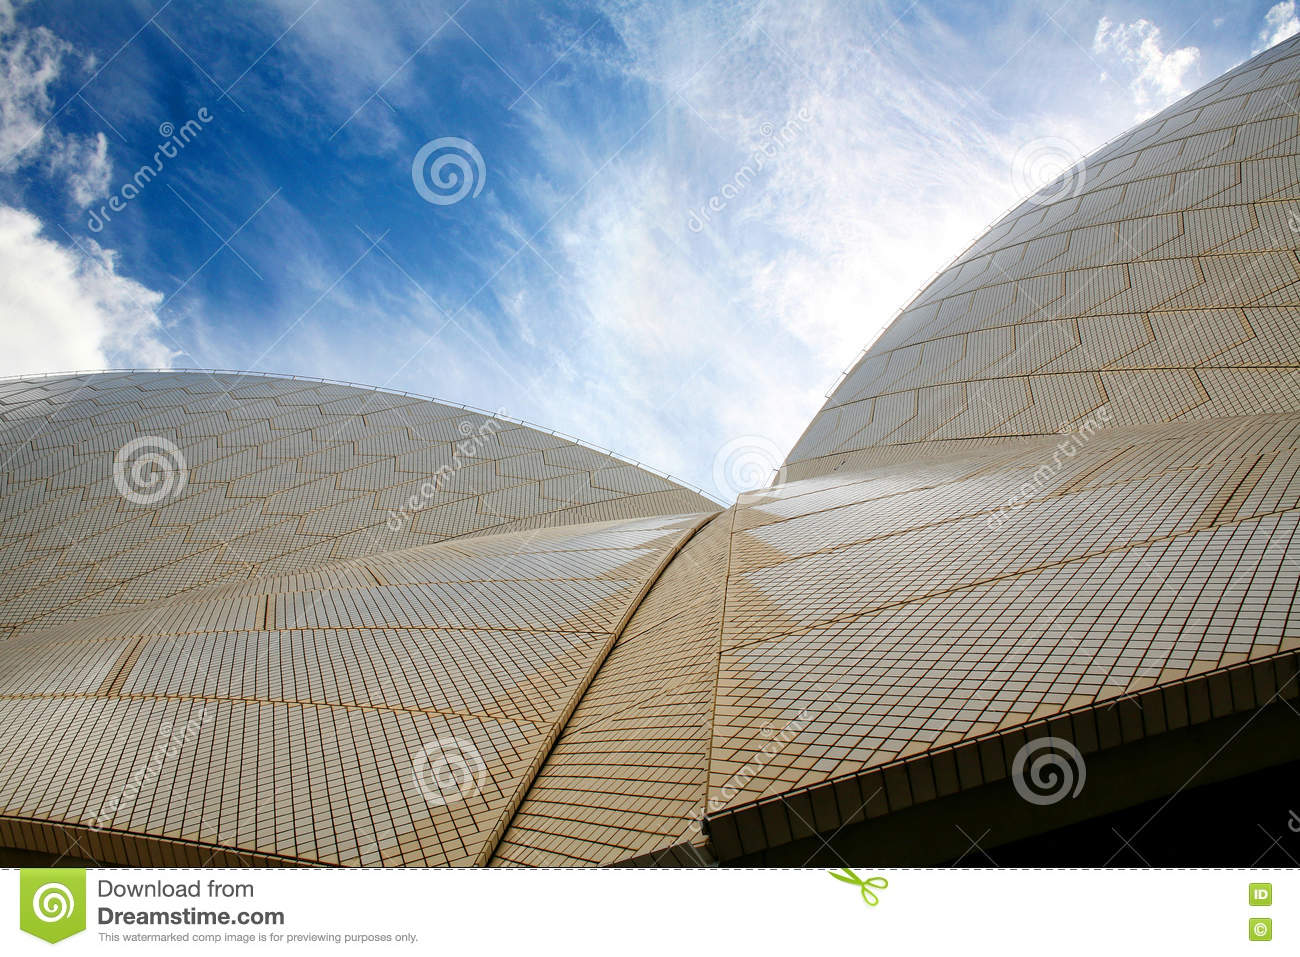 Ceramic tiles on sydney opera house editorial photo image 81481311 editorial stock photo download ceramic tiles on sydney doublecrazyfo Image collections